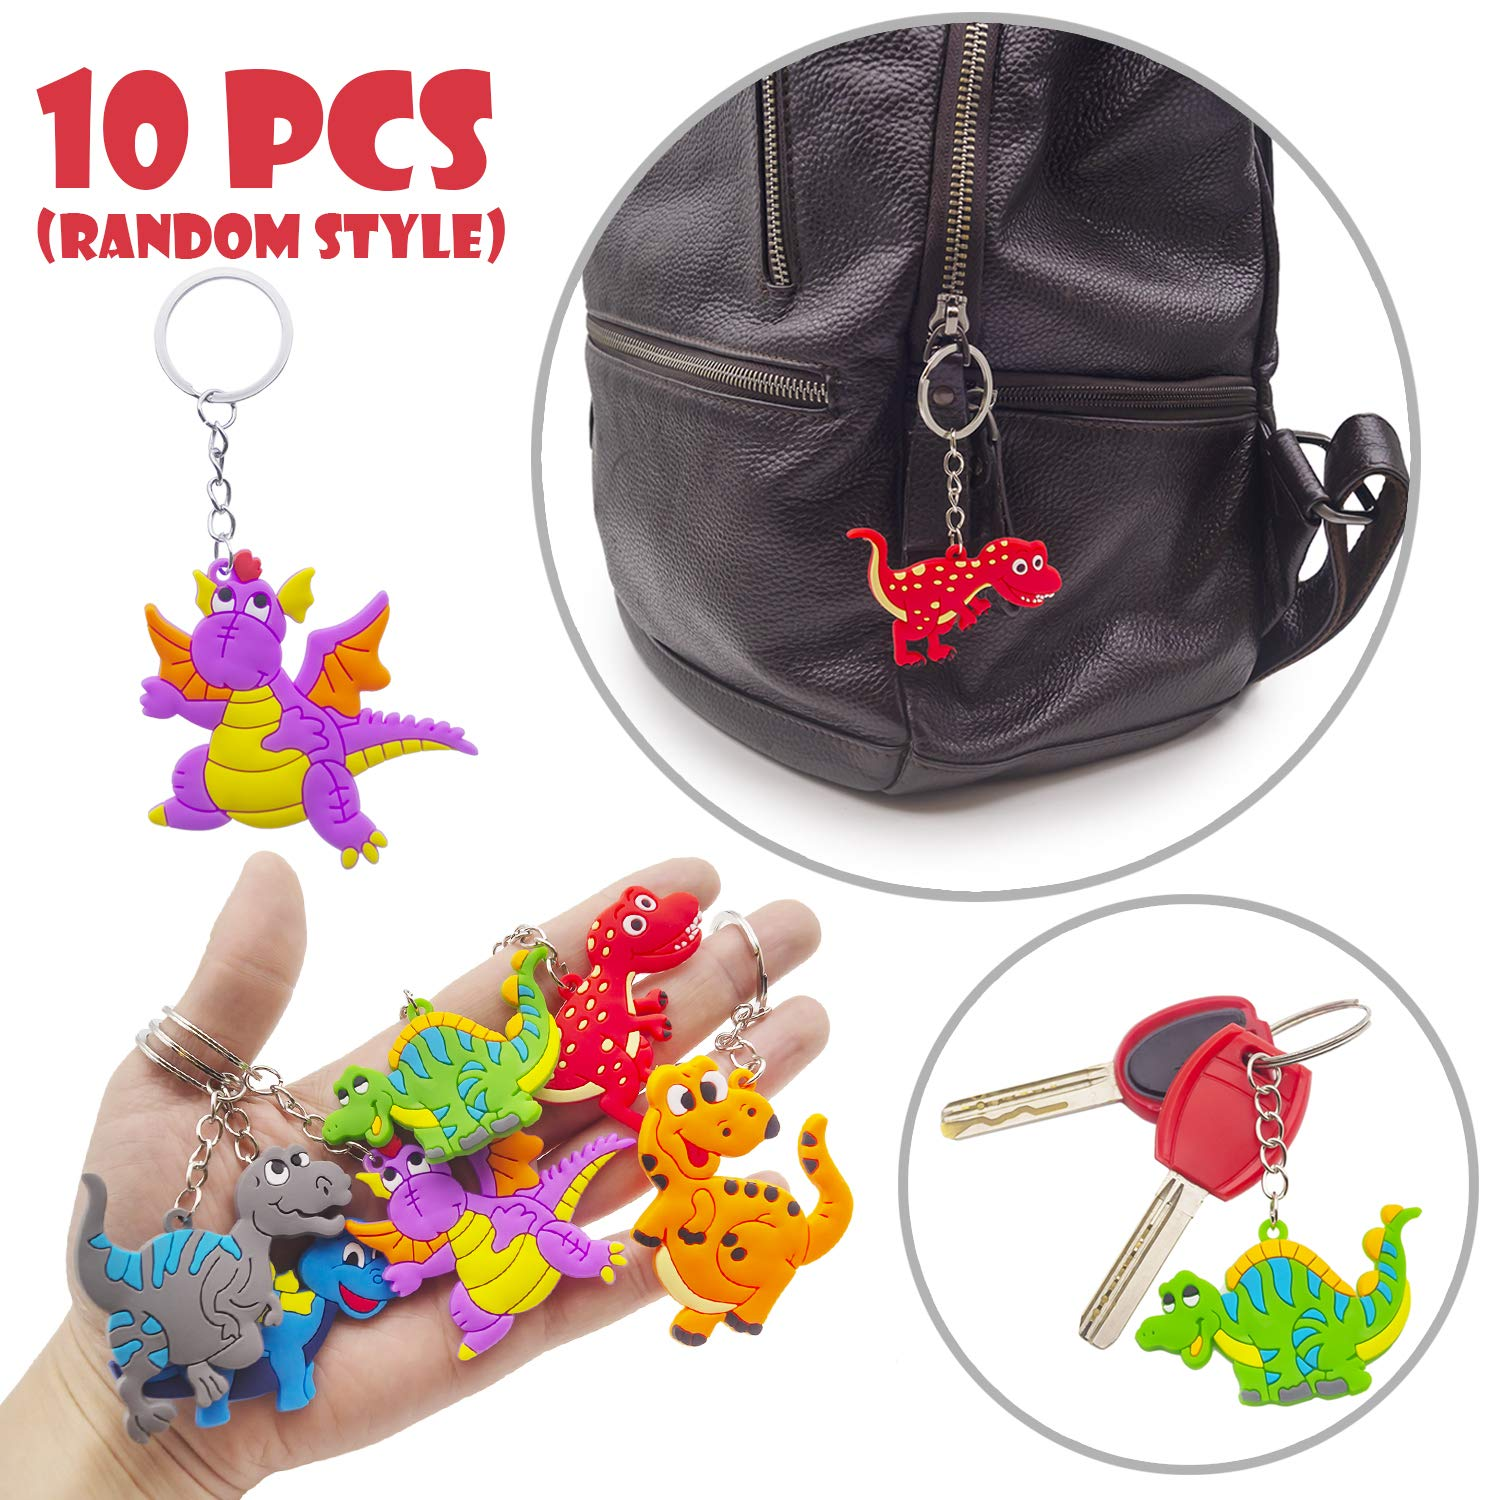 56 PCS Dinosaur Party Favors,Dinosaur Party Goodie Bag Fillers,Prizes Gift Carnivals for Kids Birthday